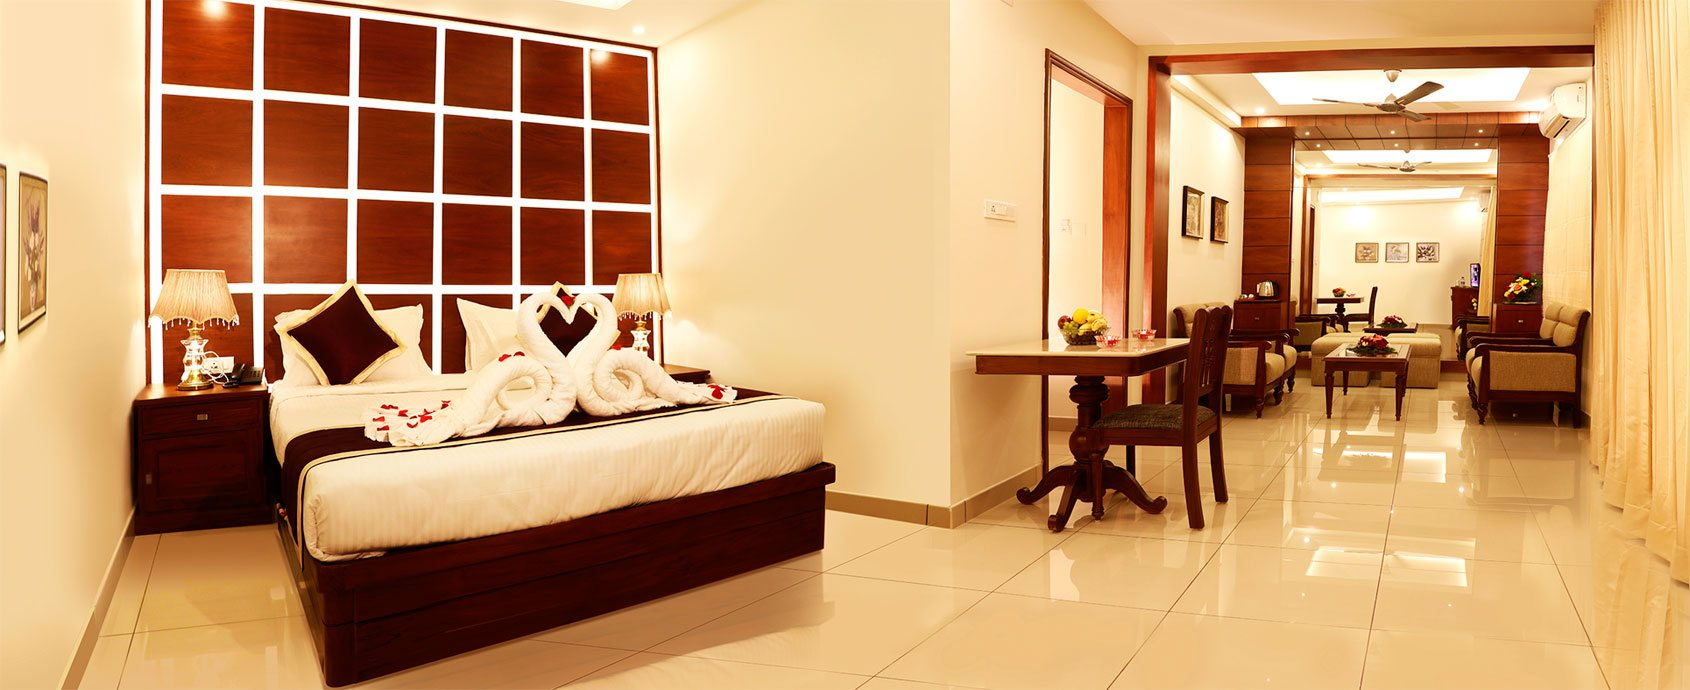 3 star hotels in guruvayoor